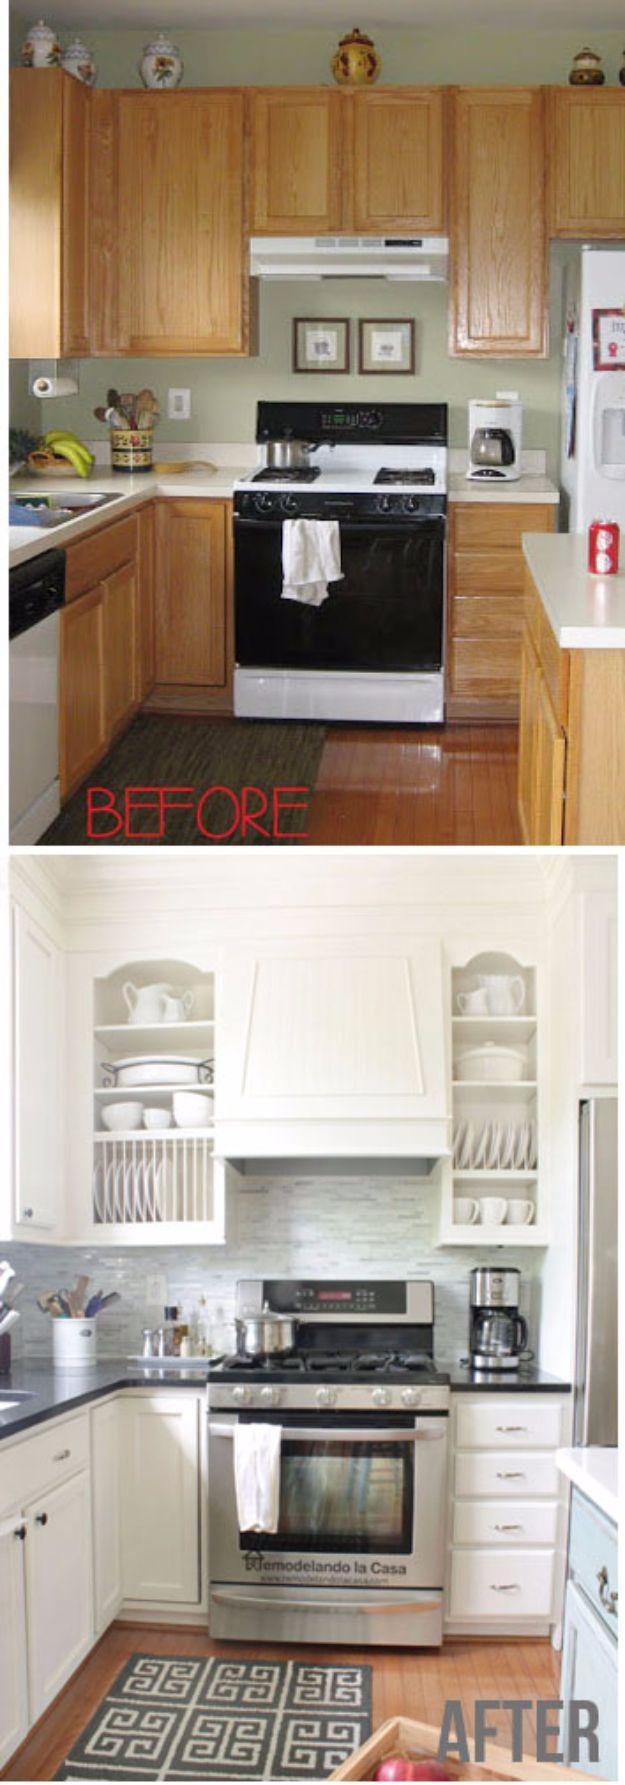 Best 25+ Kitchen makeovers ideas on Pinterest | Cabinet makeover, Update  kitchen cabinets and Oak cabinet makeover kitchen